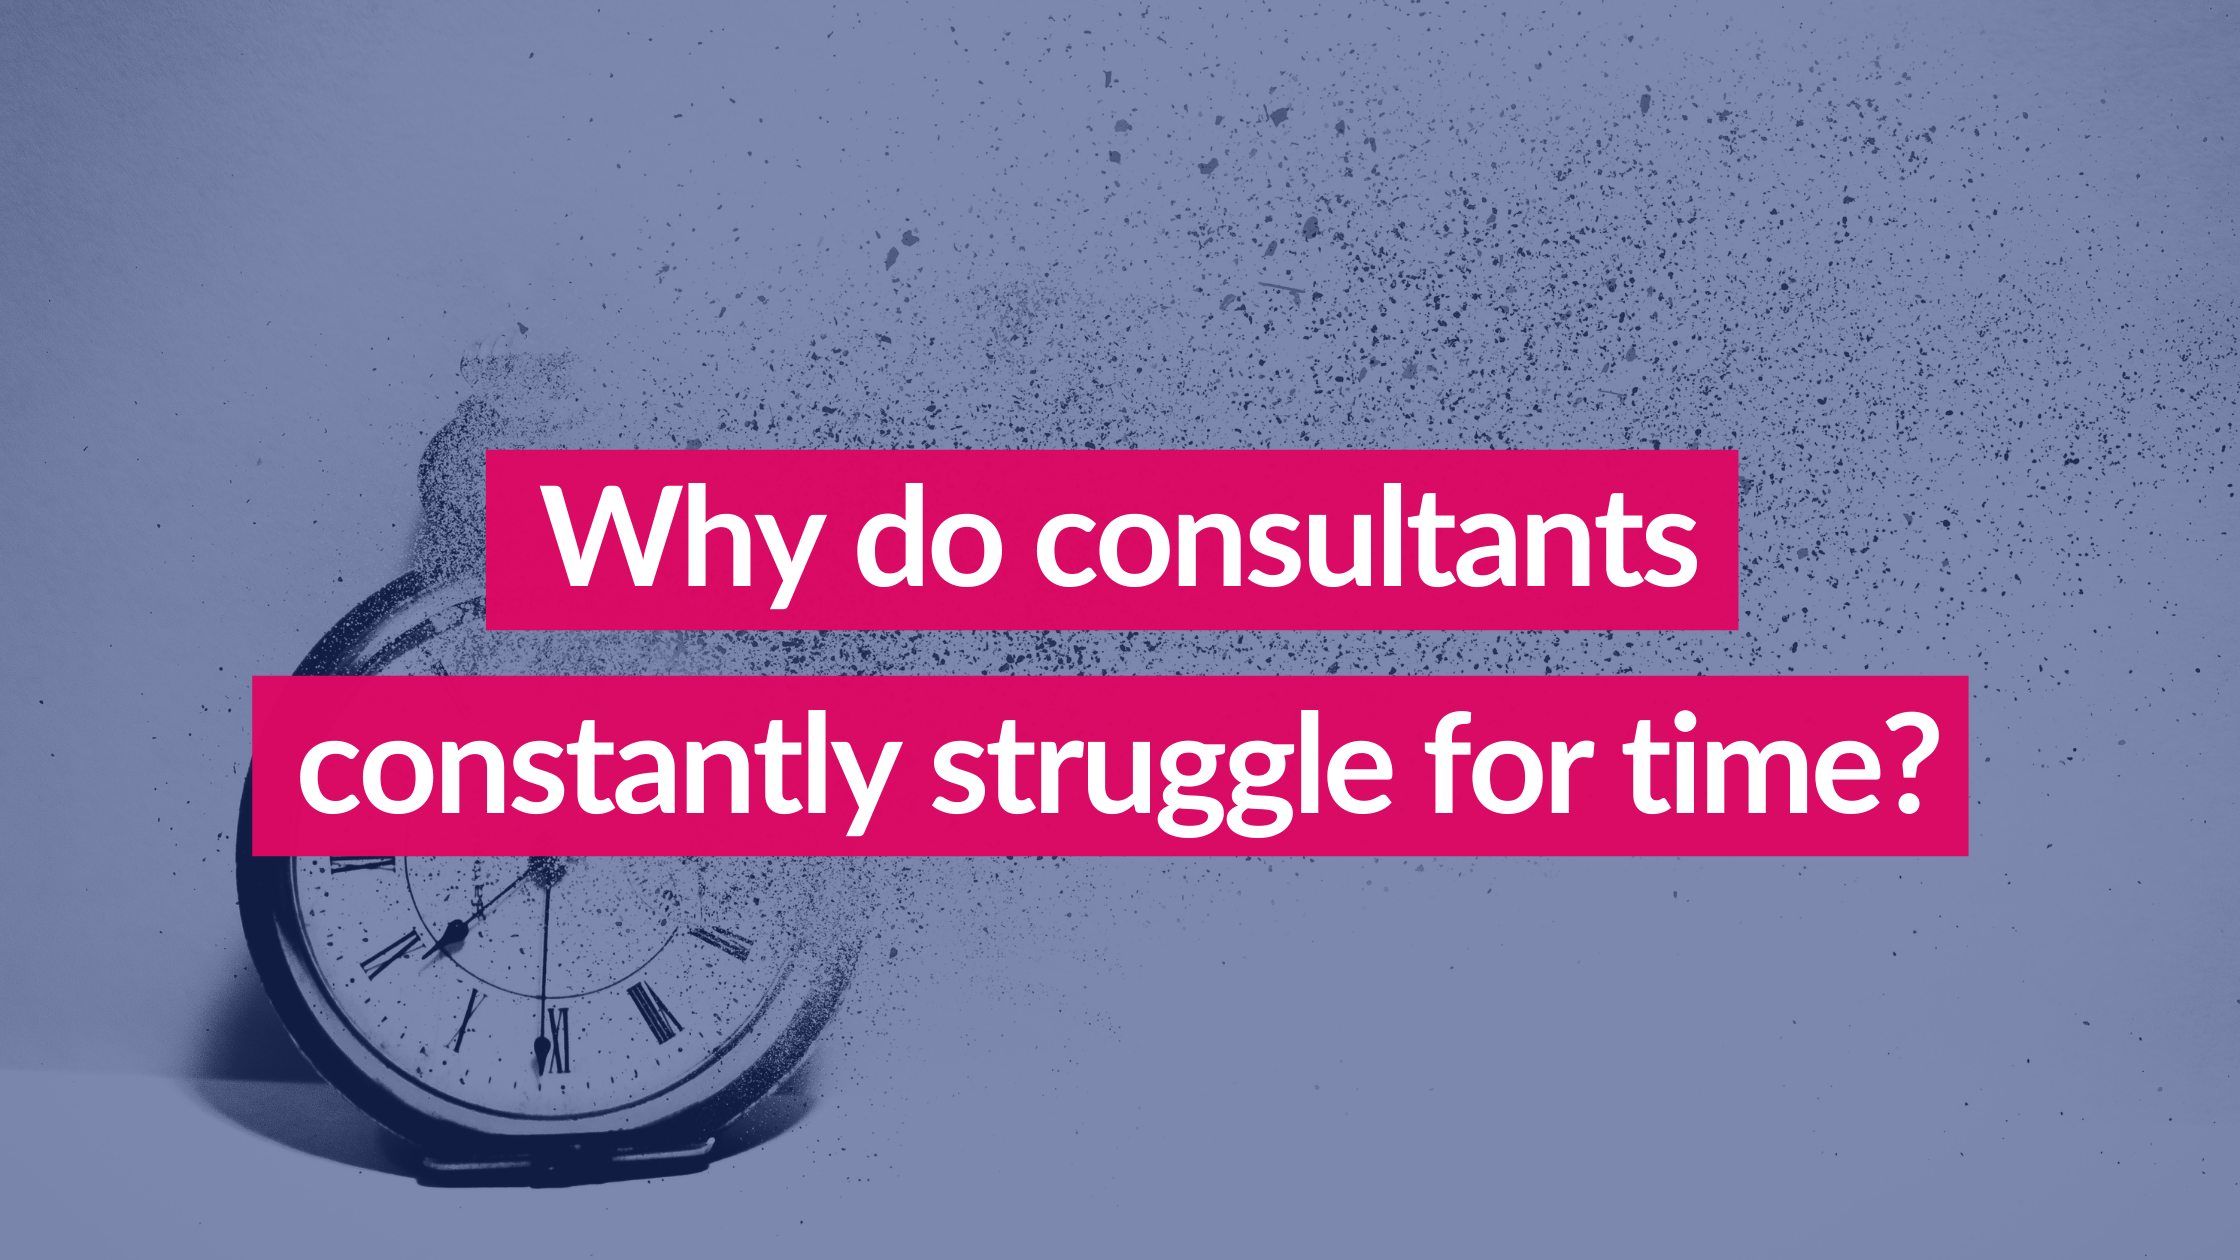 Why do consultants constantly struggle for time?